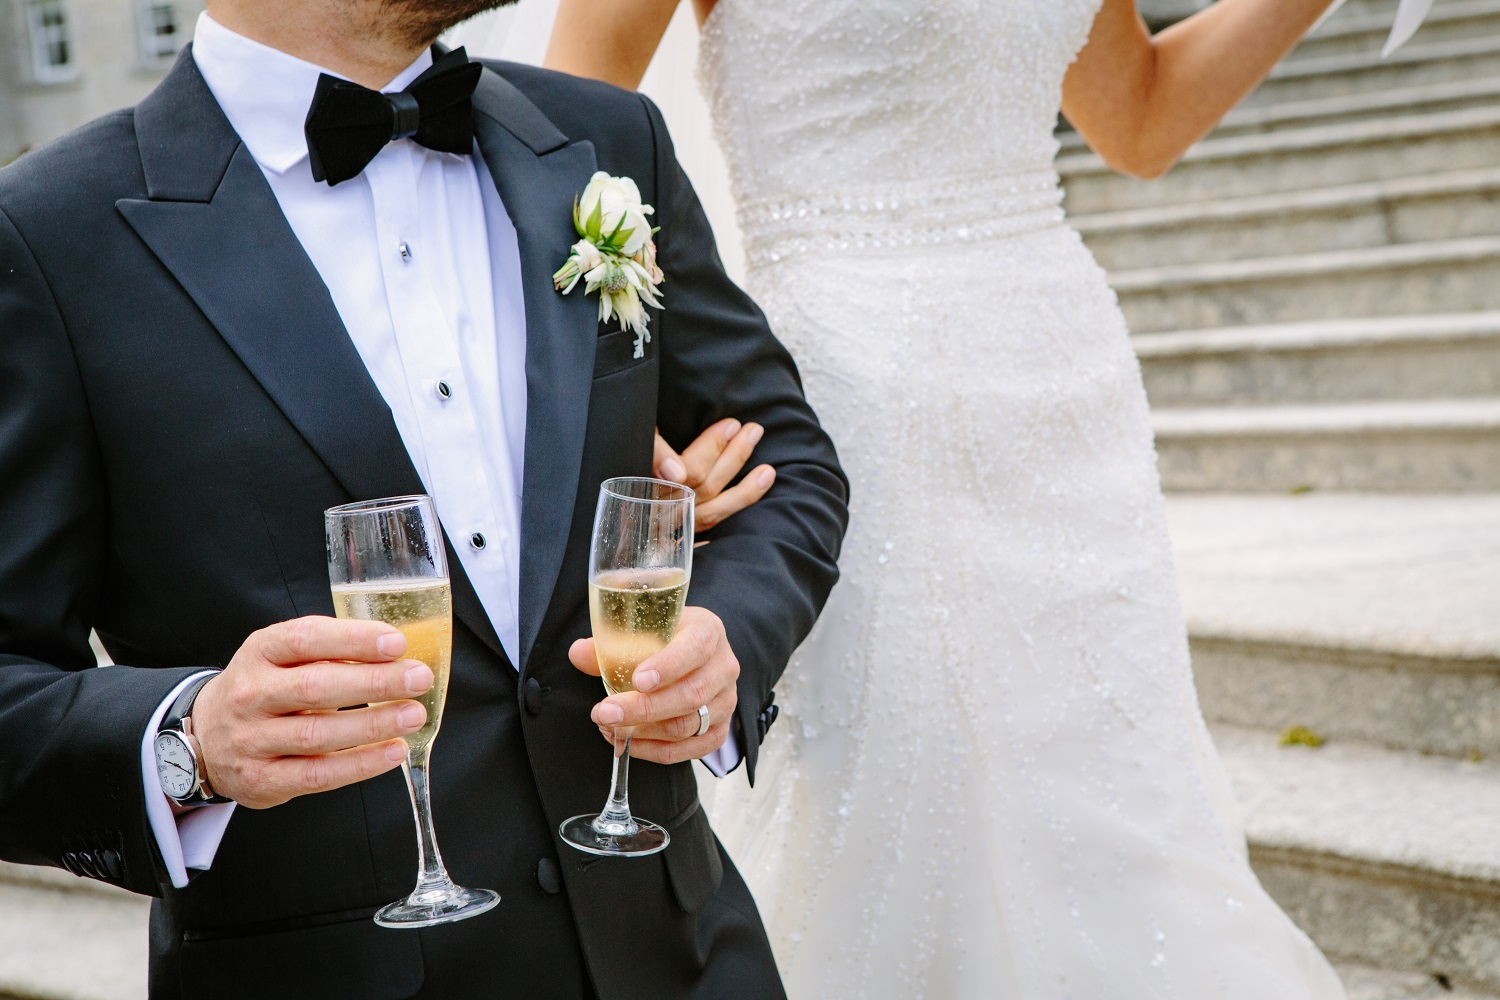 Getting Married? - Grooms and groomsmen perfectly styled, because the bride is only half of what matters most. She's not renting her dress, why should you rent your tux?